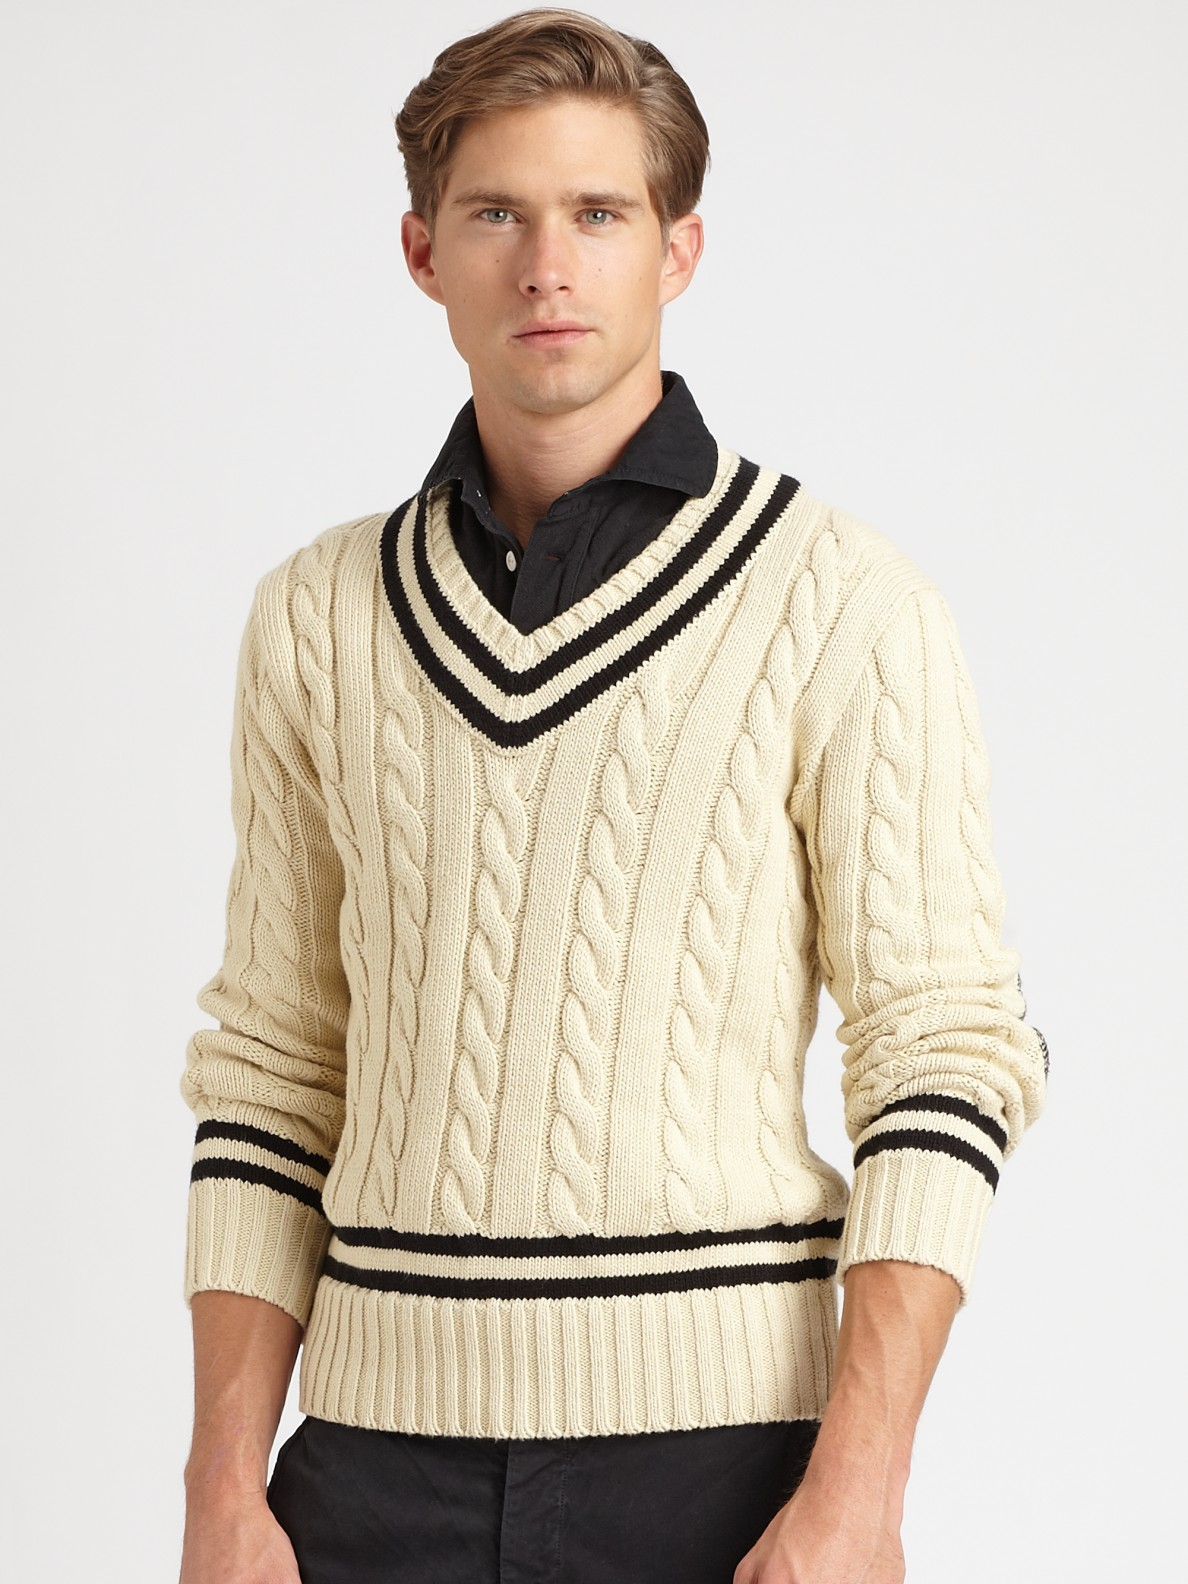 Knitting Pattern For Cricket Sweater : Polo ralph lauren Cabled V-neck Cricket Sweater in Natural for Men Lyst